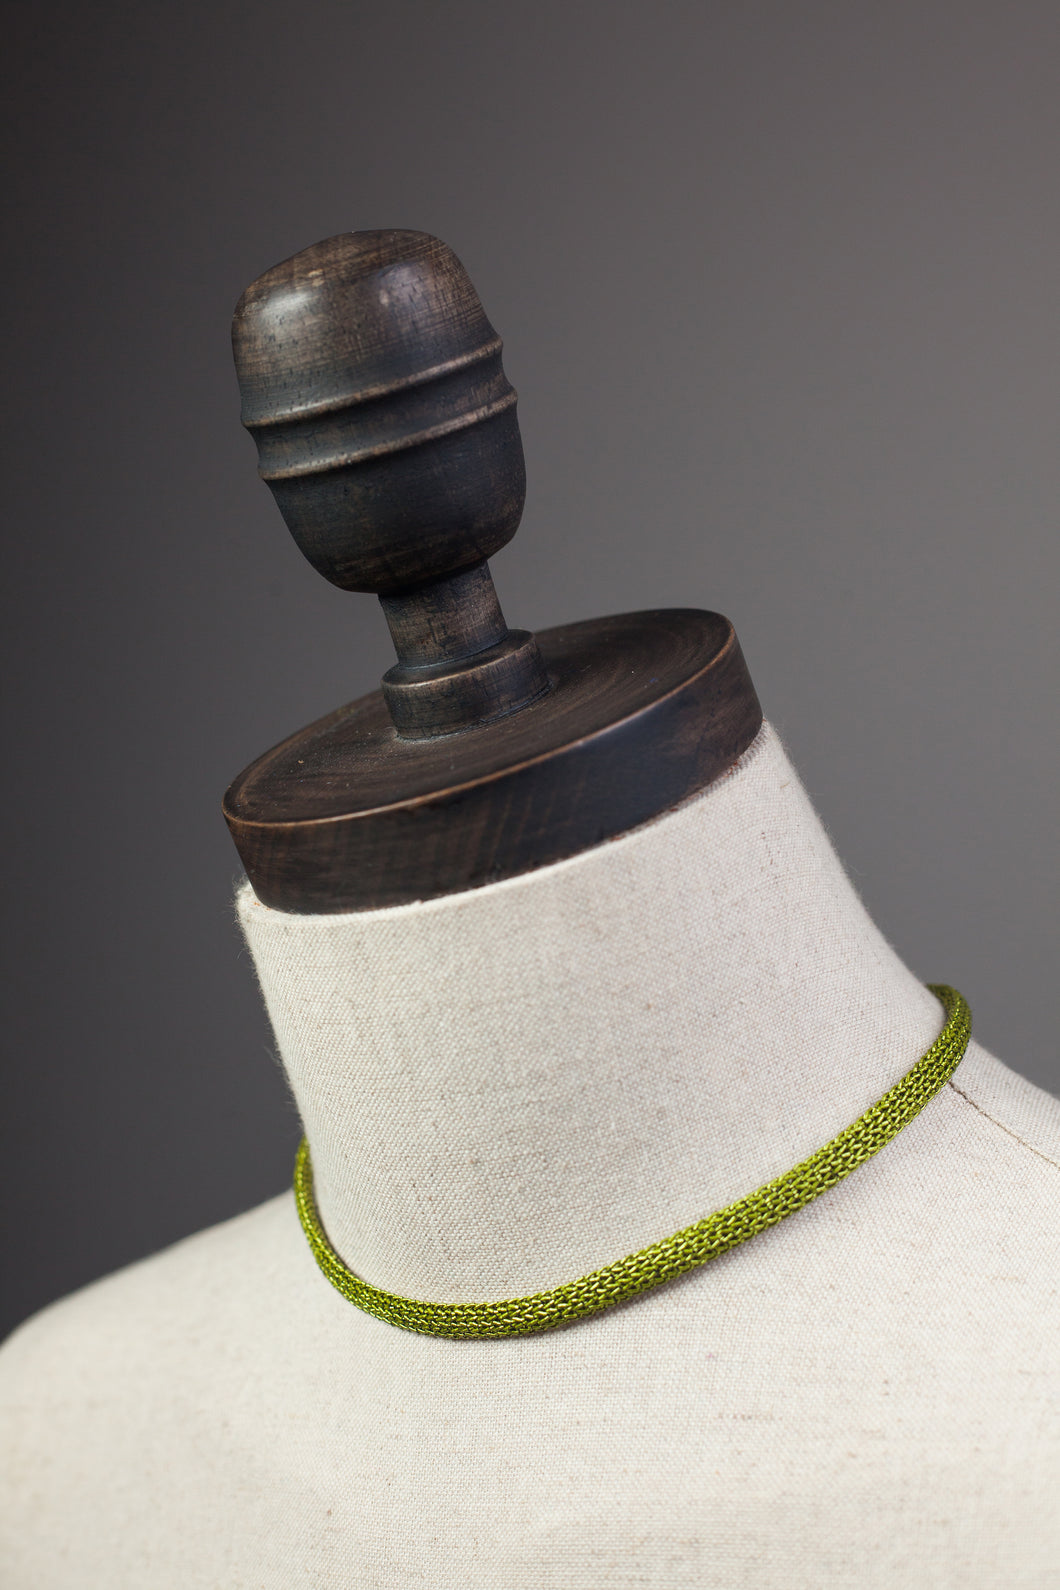 Chain Necklace in Lime - Necklace - Megan Crook